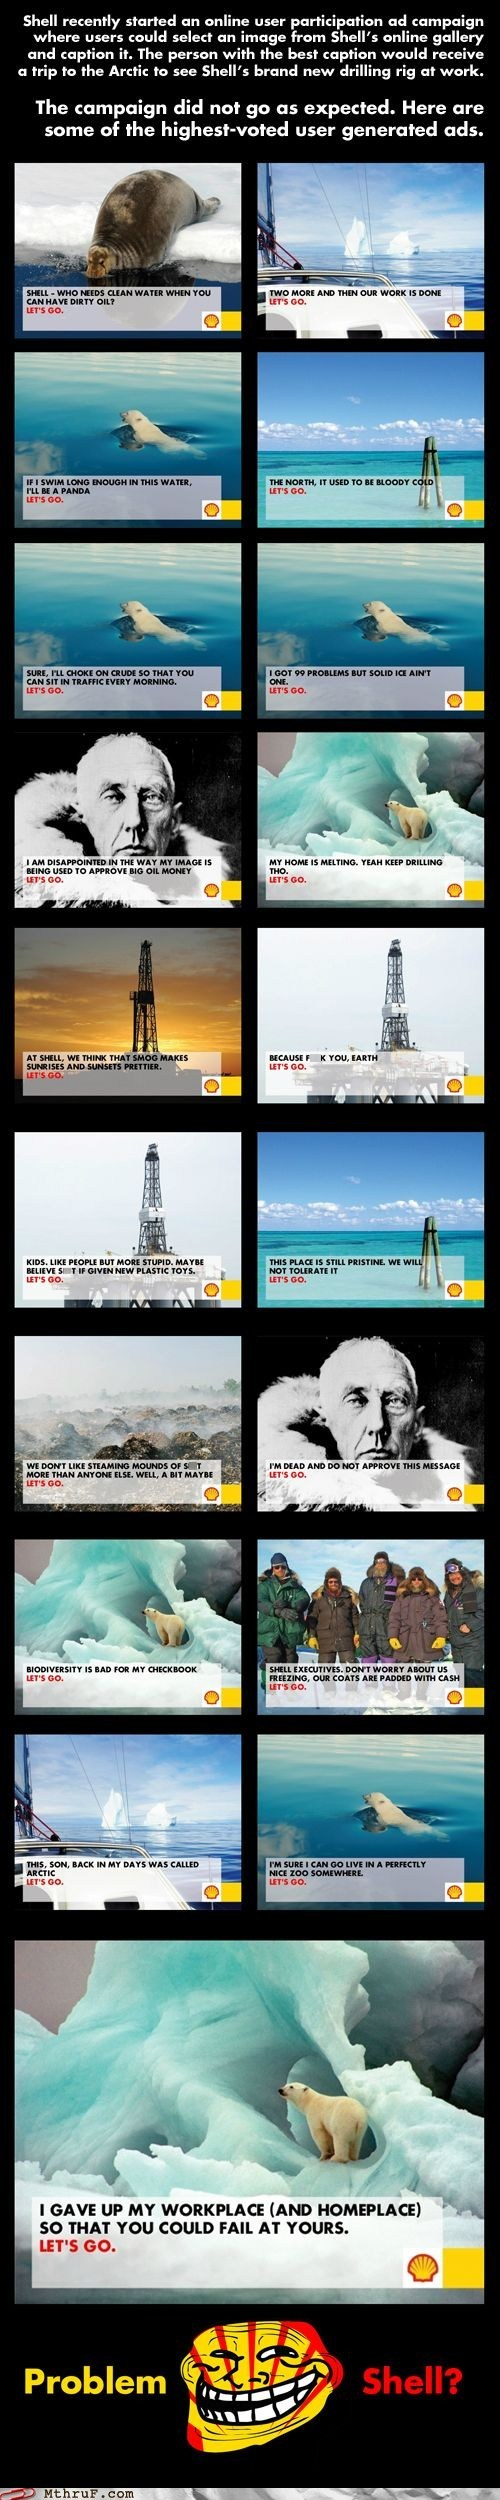 Ad Campaign,ad fail,advertising fail,arctic ice,arctic icecap,arctic ready,art of trolling,environment,global warming,icecaps,IRL,kulluk,lets go,Marketing Campaign,marketing fail,monday thru friday,oil drilling,polar bear,problem shell,royal dutch shell,seal,shell,shell advertising campaig,shell arctic campaign,shell arctic drilling cam,shell drilling campaign,shell marketing campaign,u mad bro,u mad shell,user generated ads,walrus,wildlife